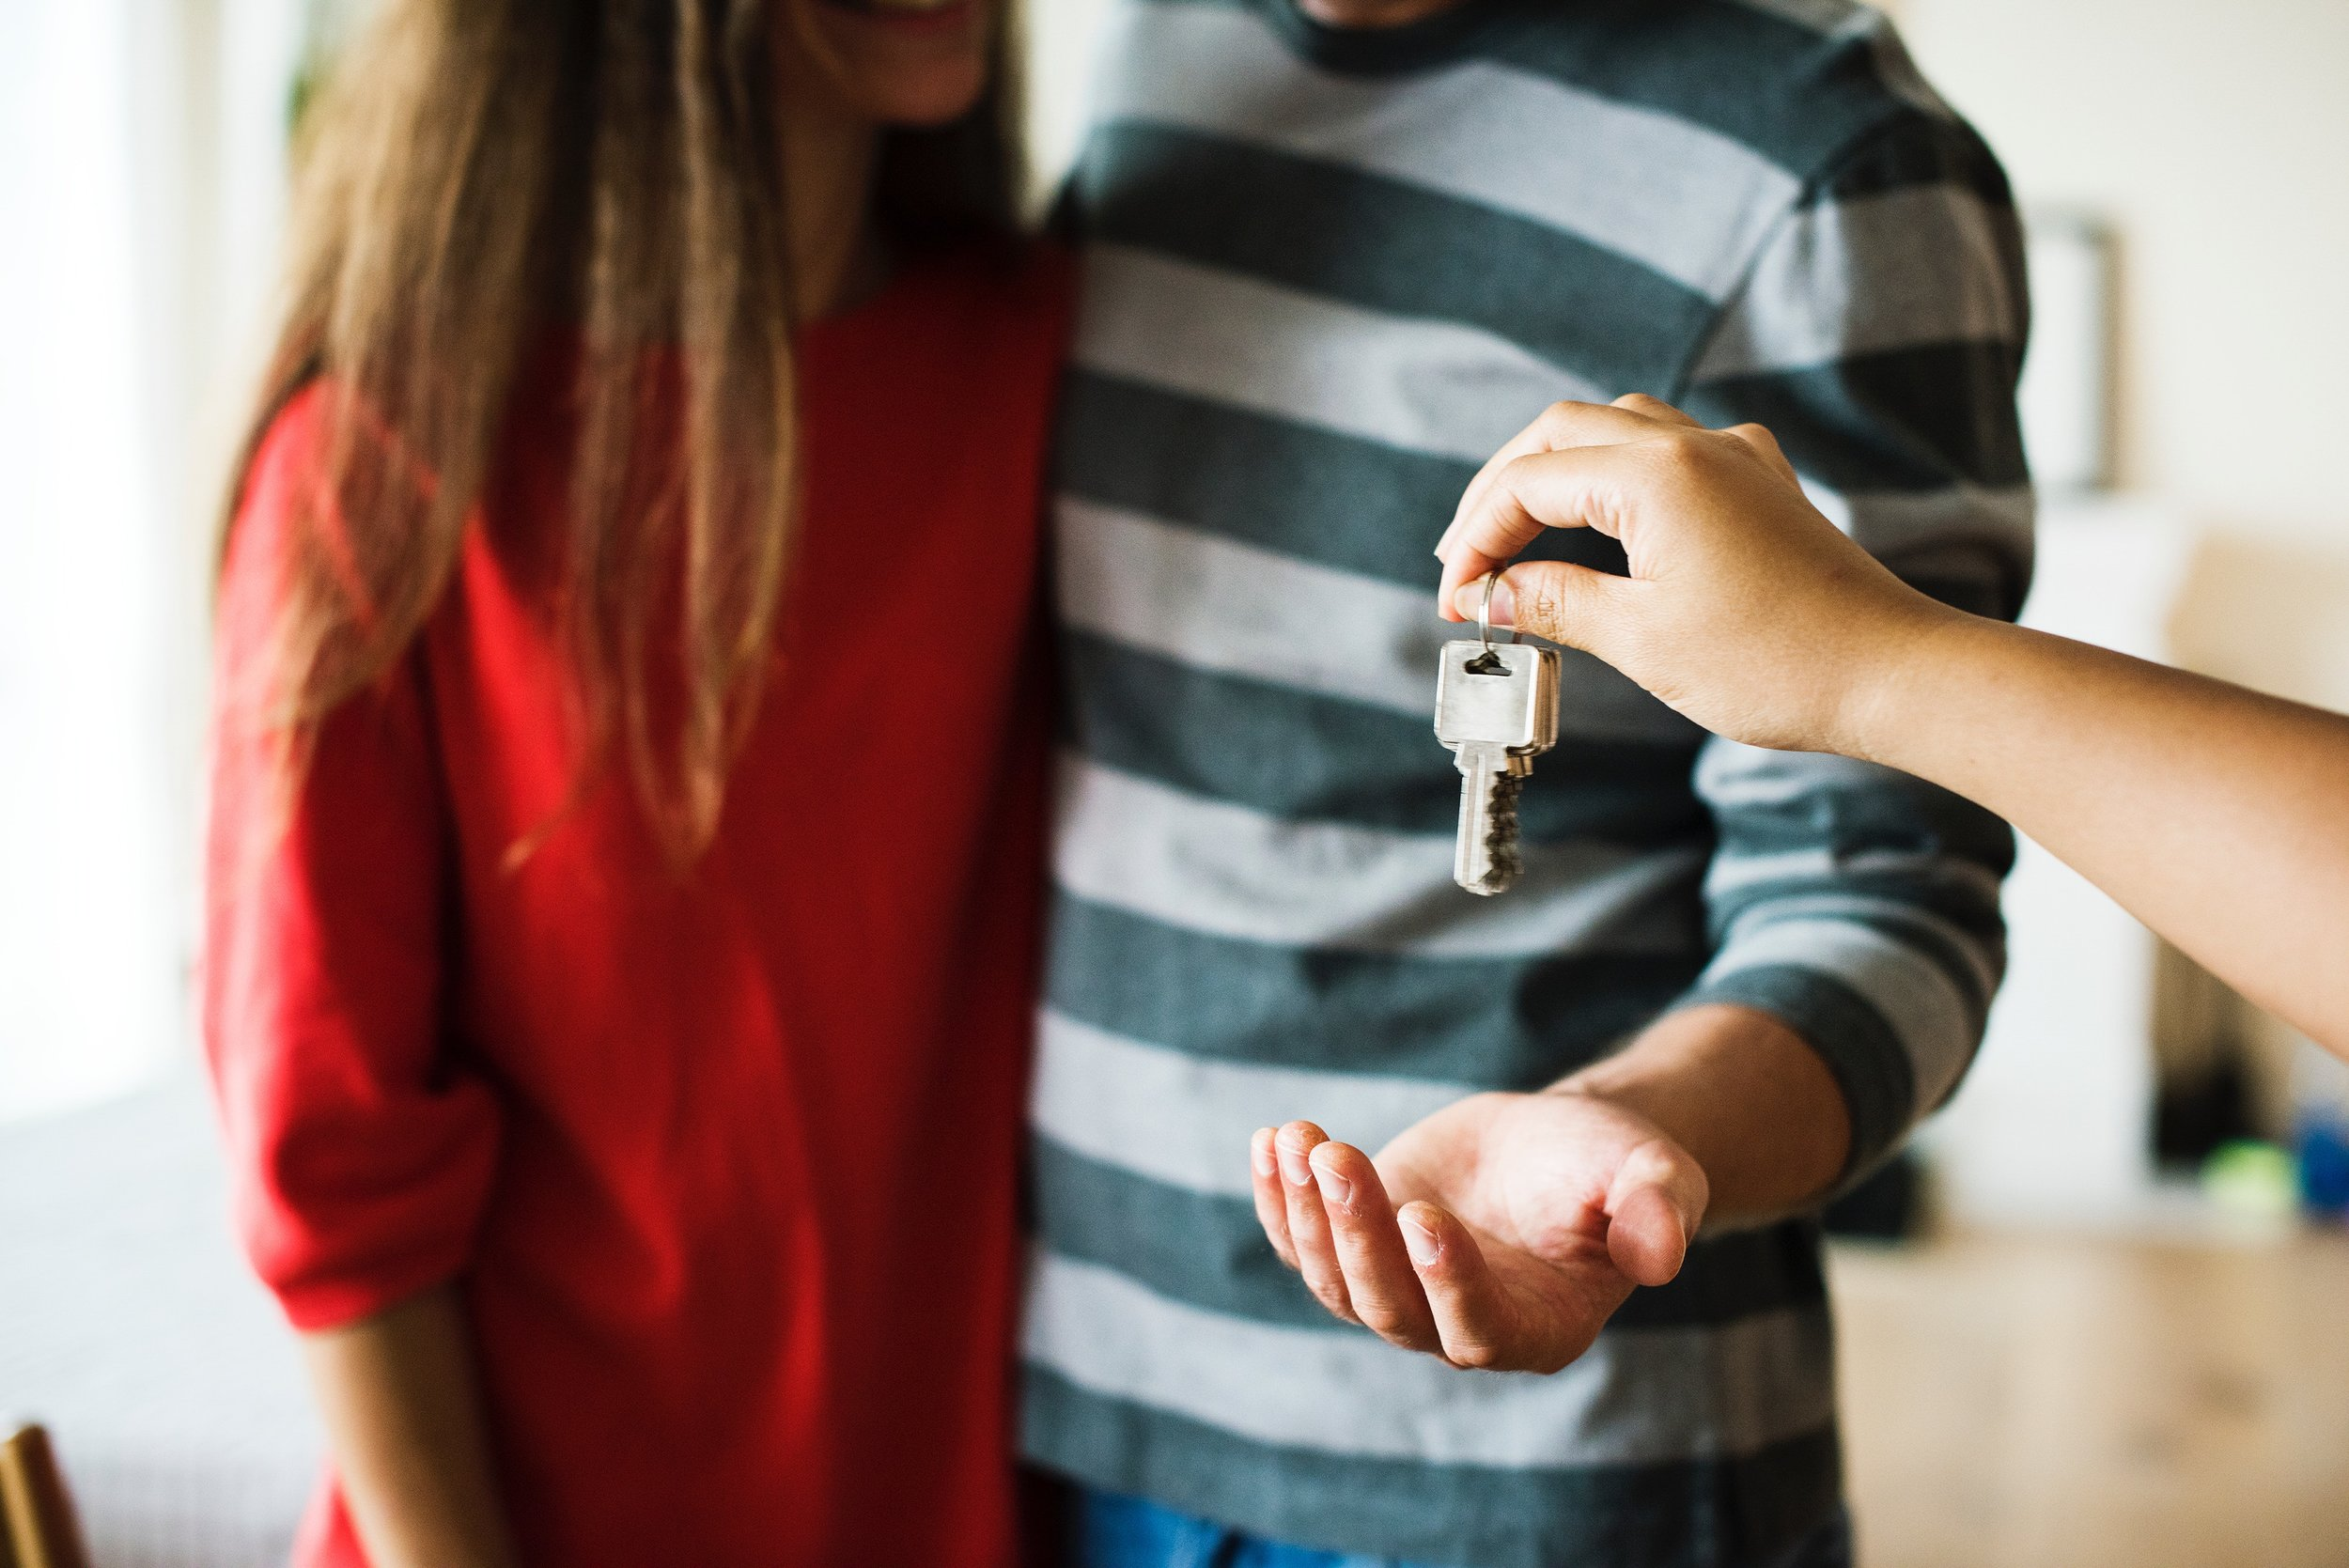 Frequently Asked Questions - Answers to the most common questions people generally have about the application process, mortgages, and the costs associated with purchasing a home.